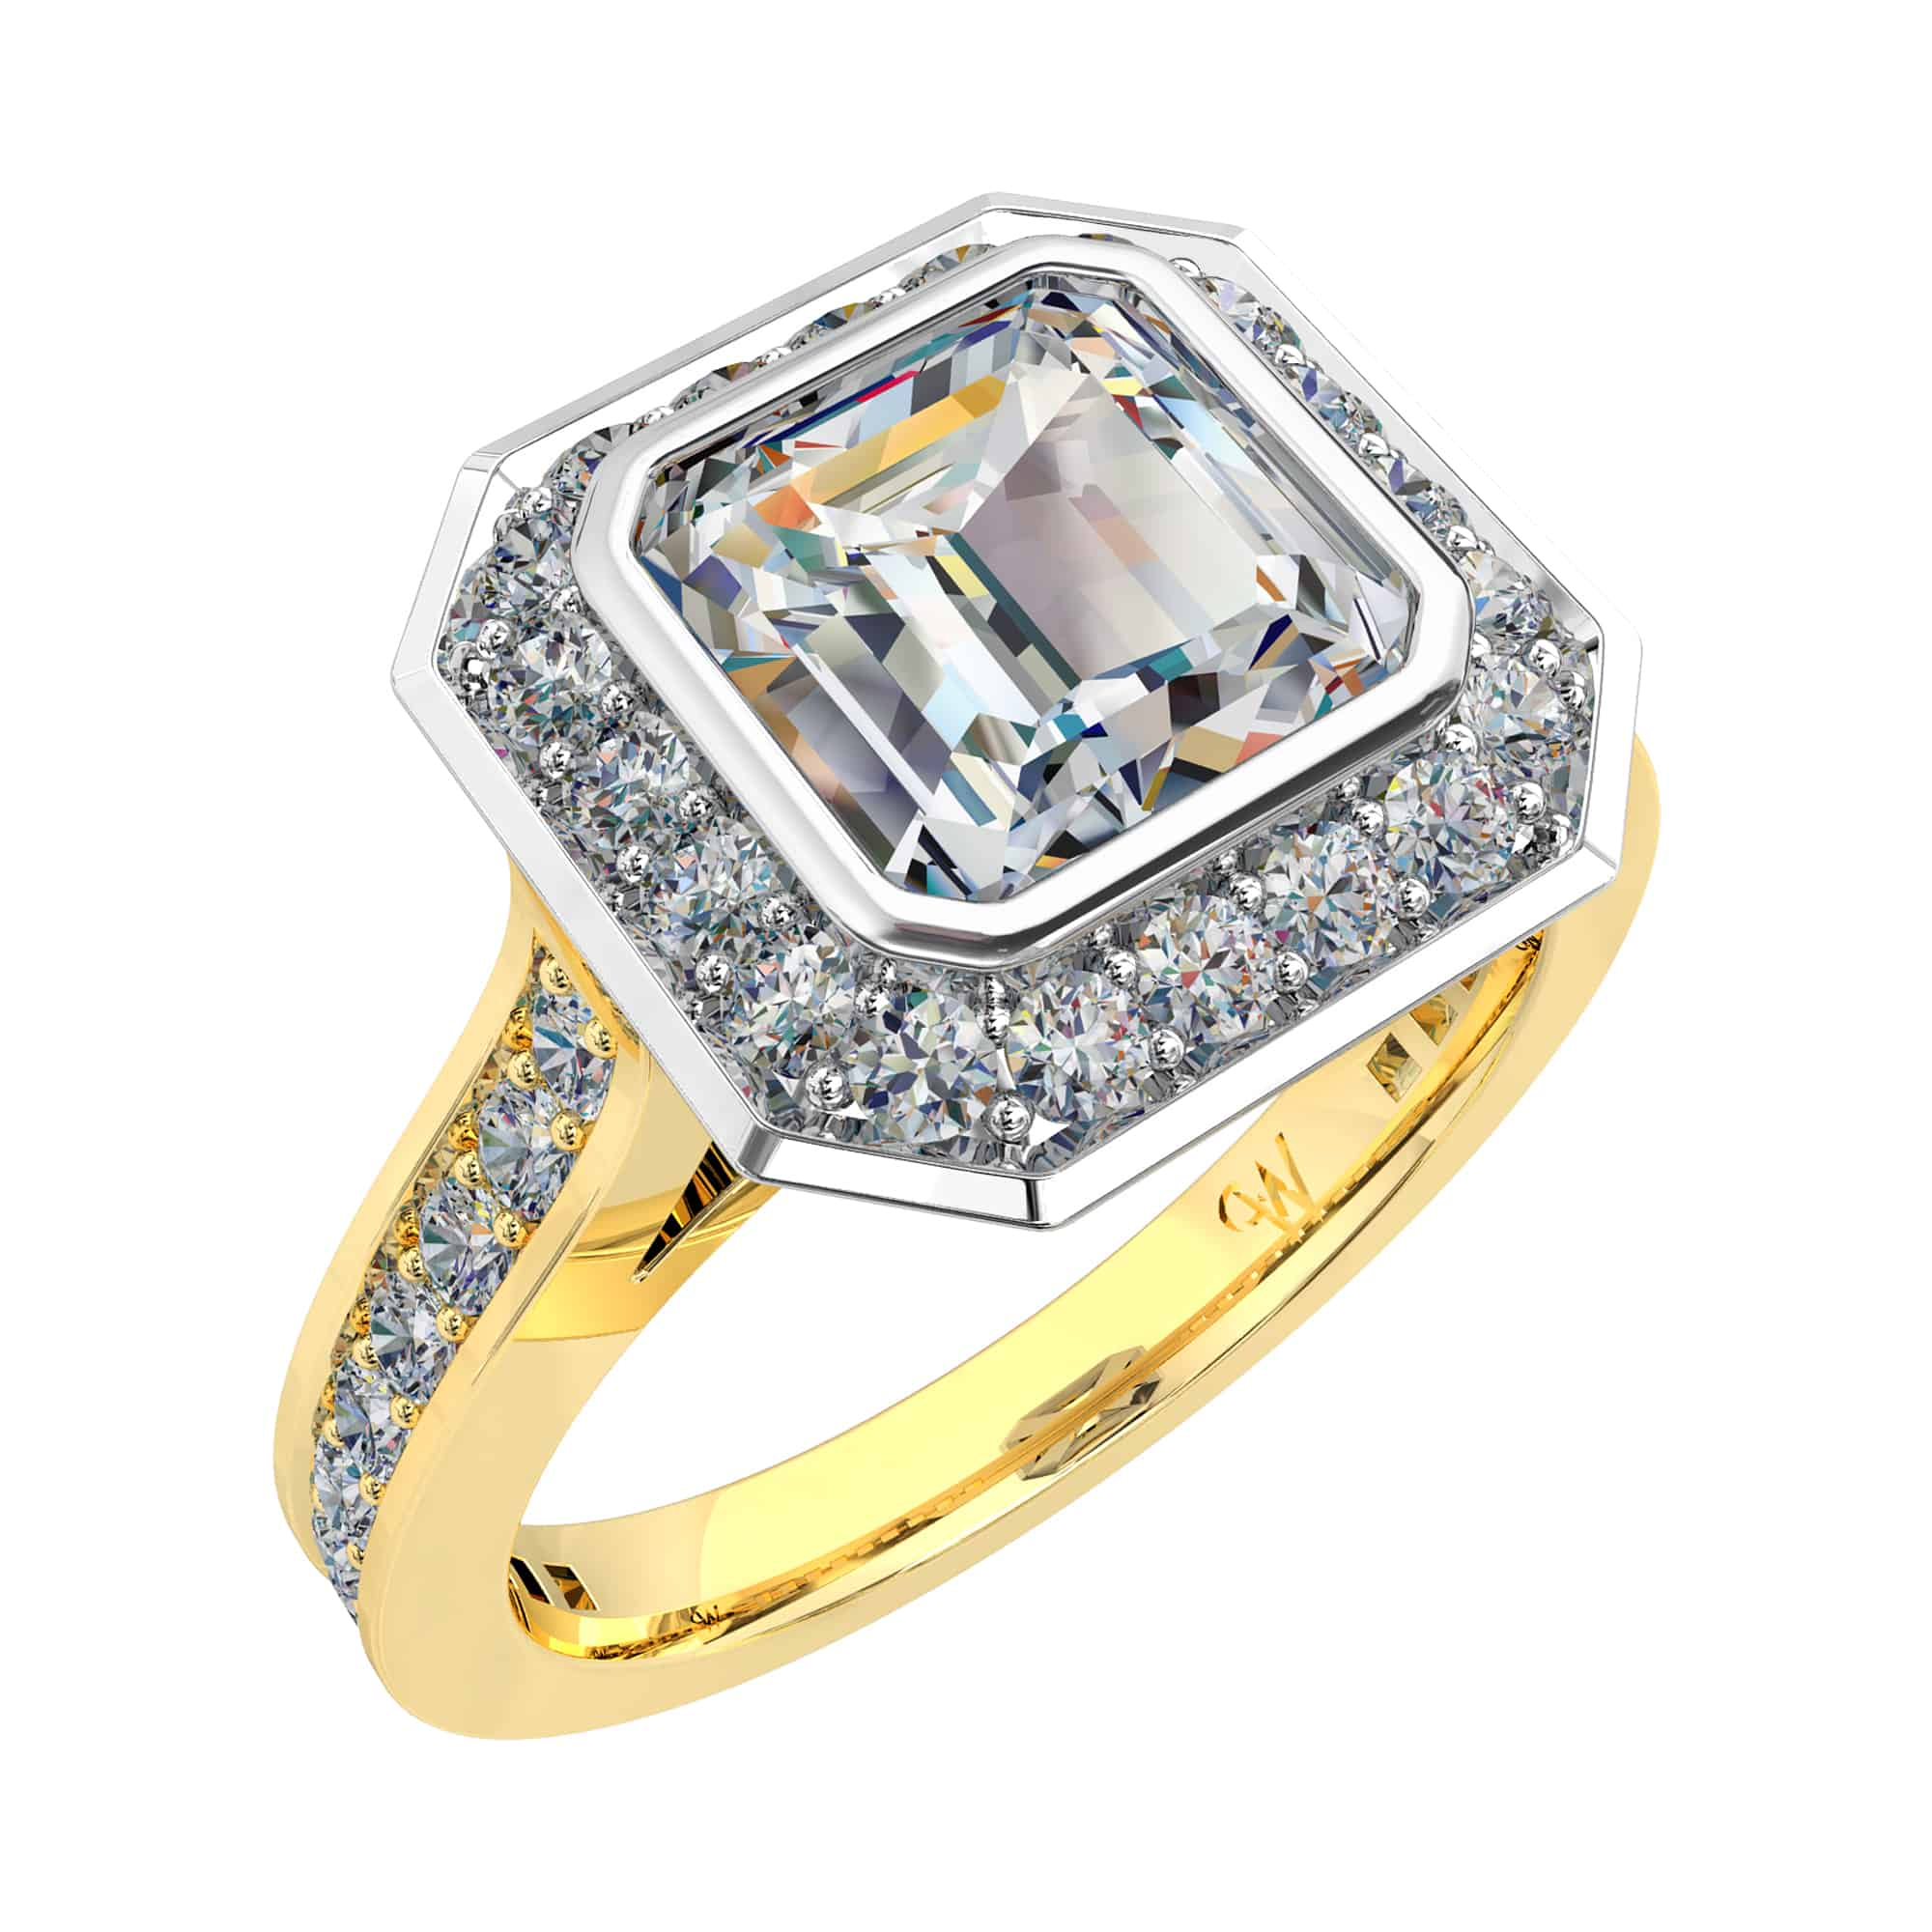 mary diamond rings face engagement flanked trapezoids material ring by products jewellery asscher cut good